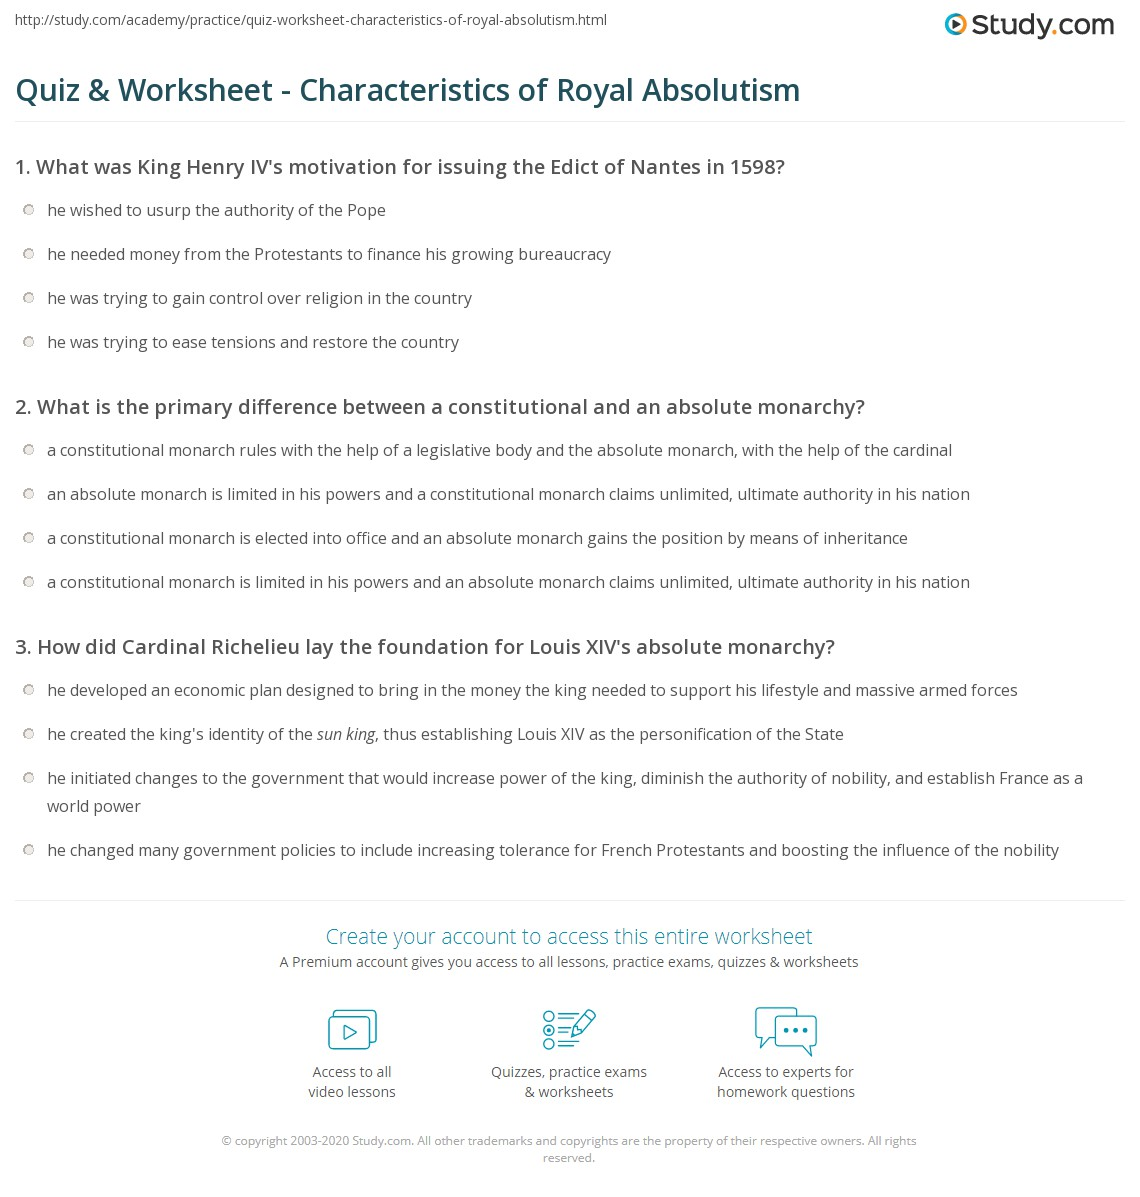 Printables Of Conflict And Absolutism In Europe Worksheet Answers